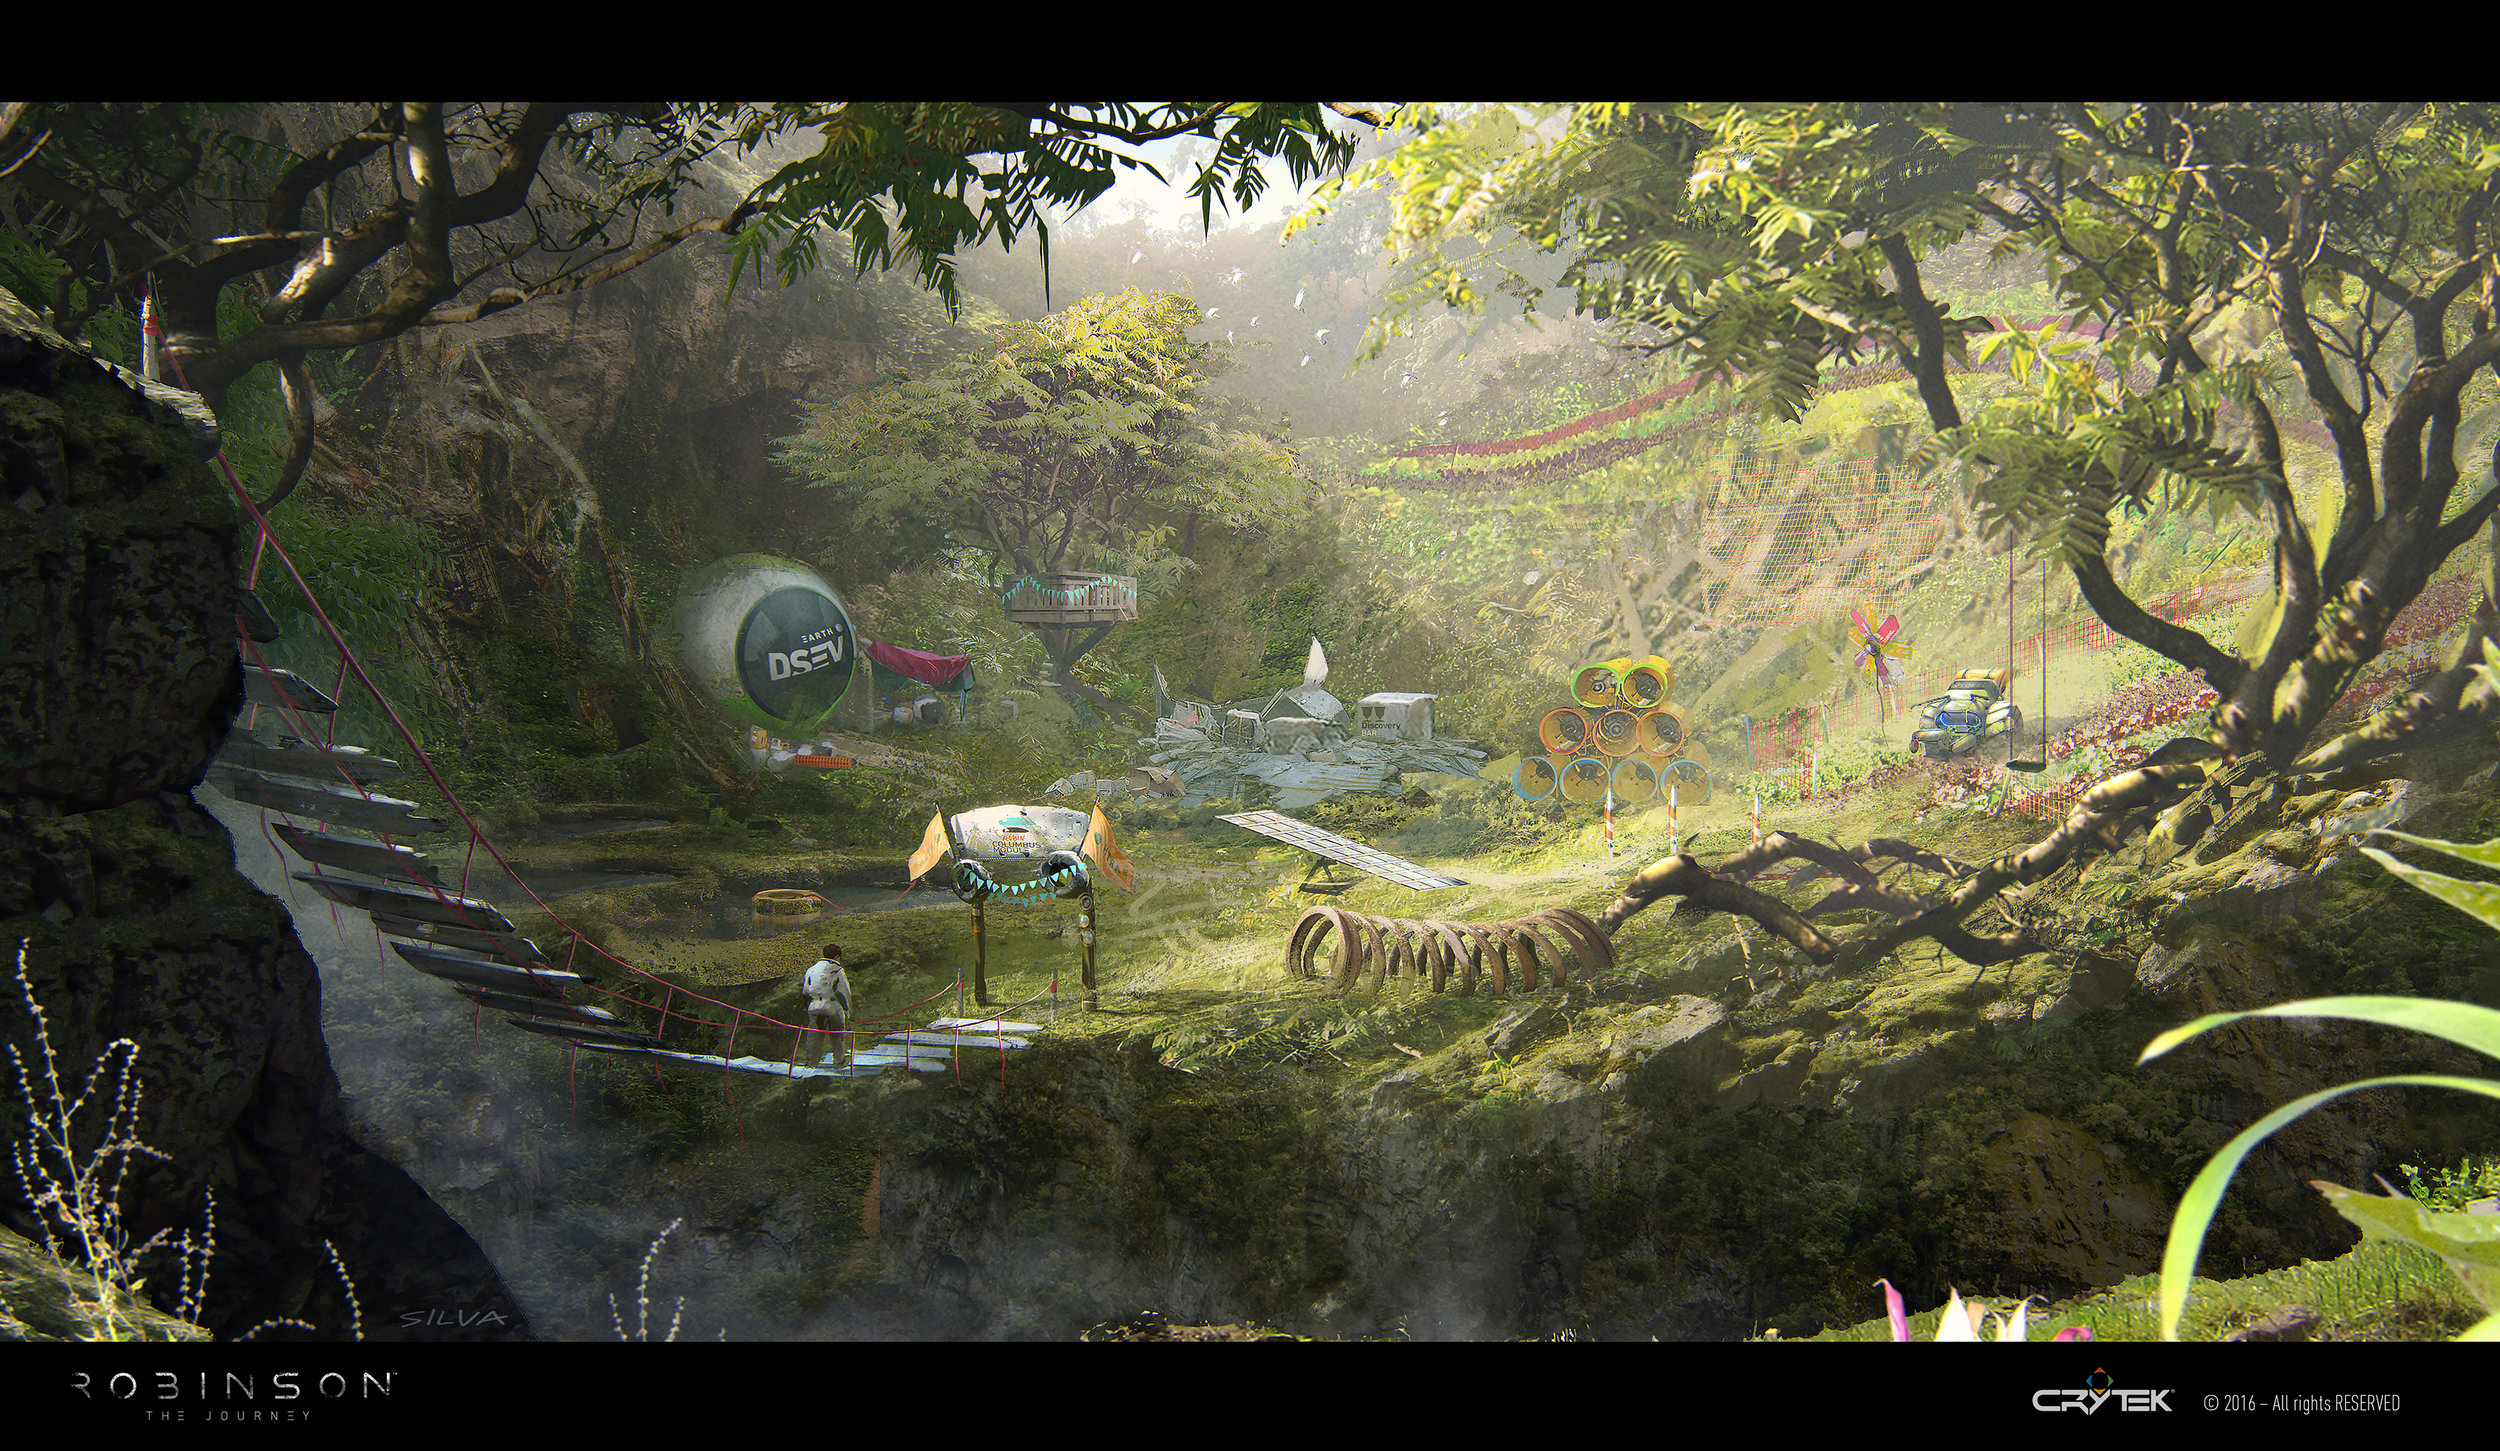 Robinson: The Journey Concept Art by Joao Silva